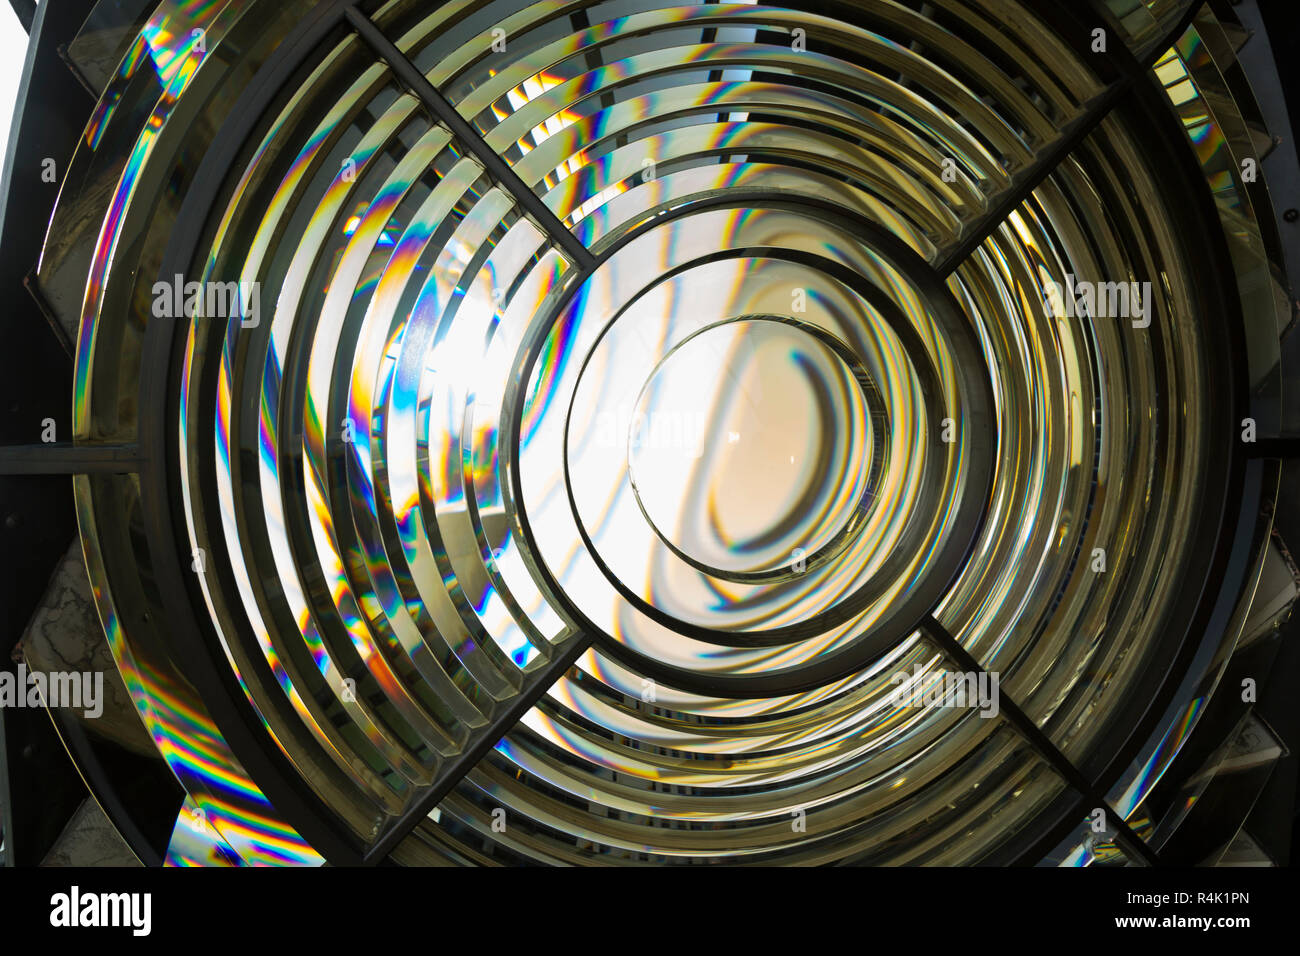 Shaped prisms which concentrate the light house lamp light into super powerful beam using a lightweight Fresnel lens. Saint Catherine's Lighthouse on the Isle of Wight. UK (98) - Stock Image